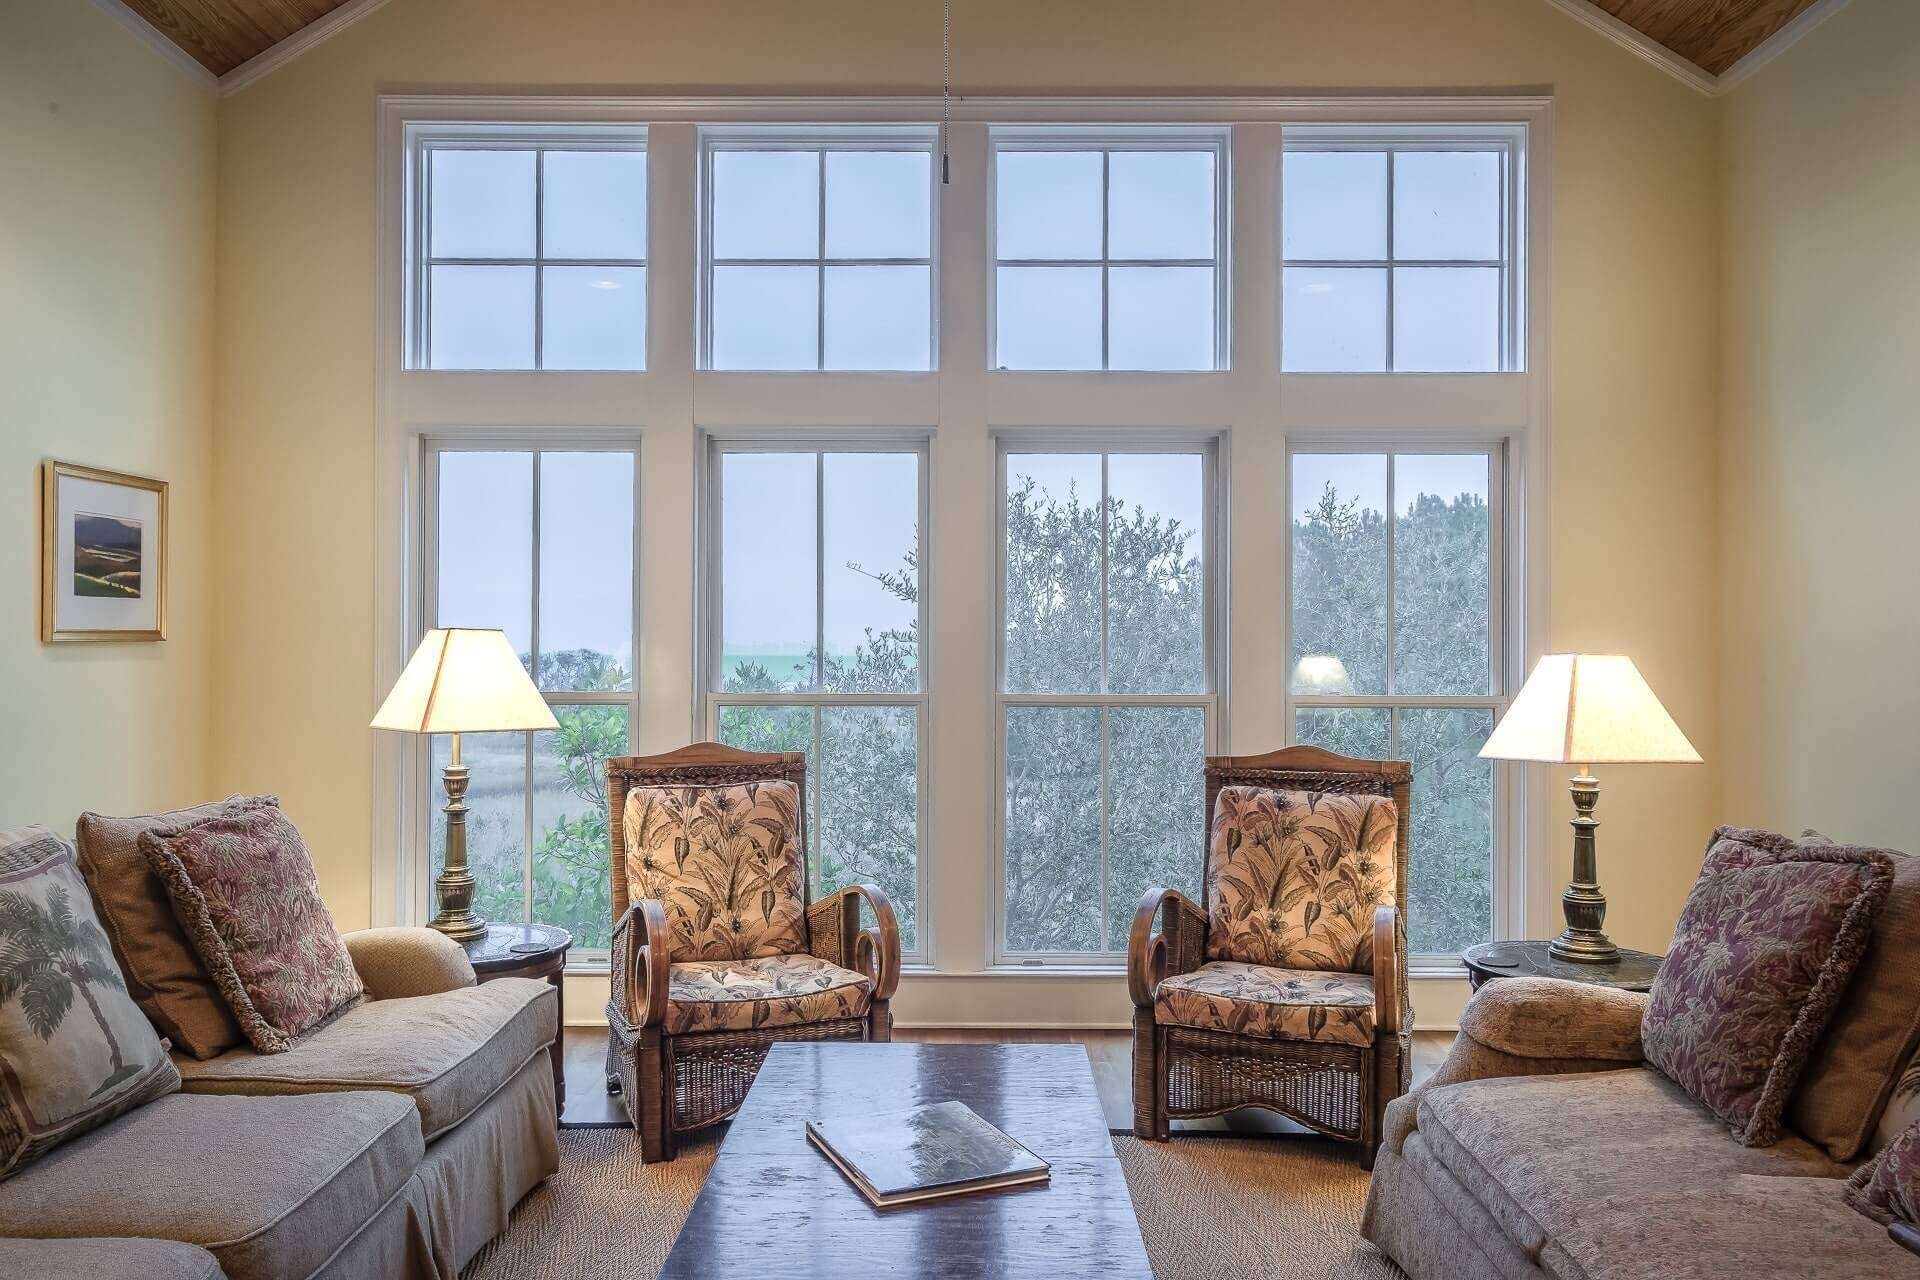 winter-home-snow-forsale-selling-homestaging-tips-lighting-natural-lamps